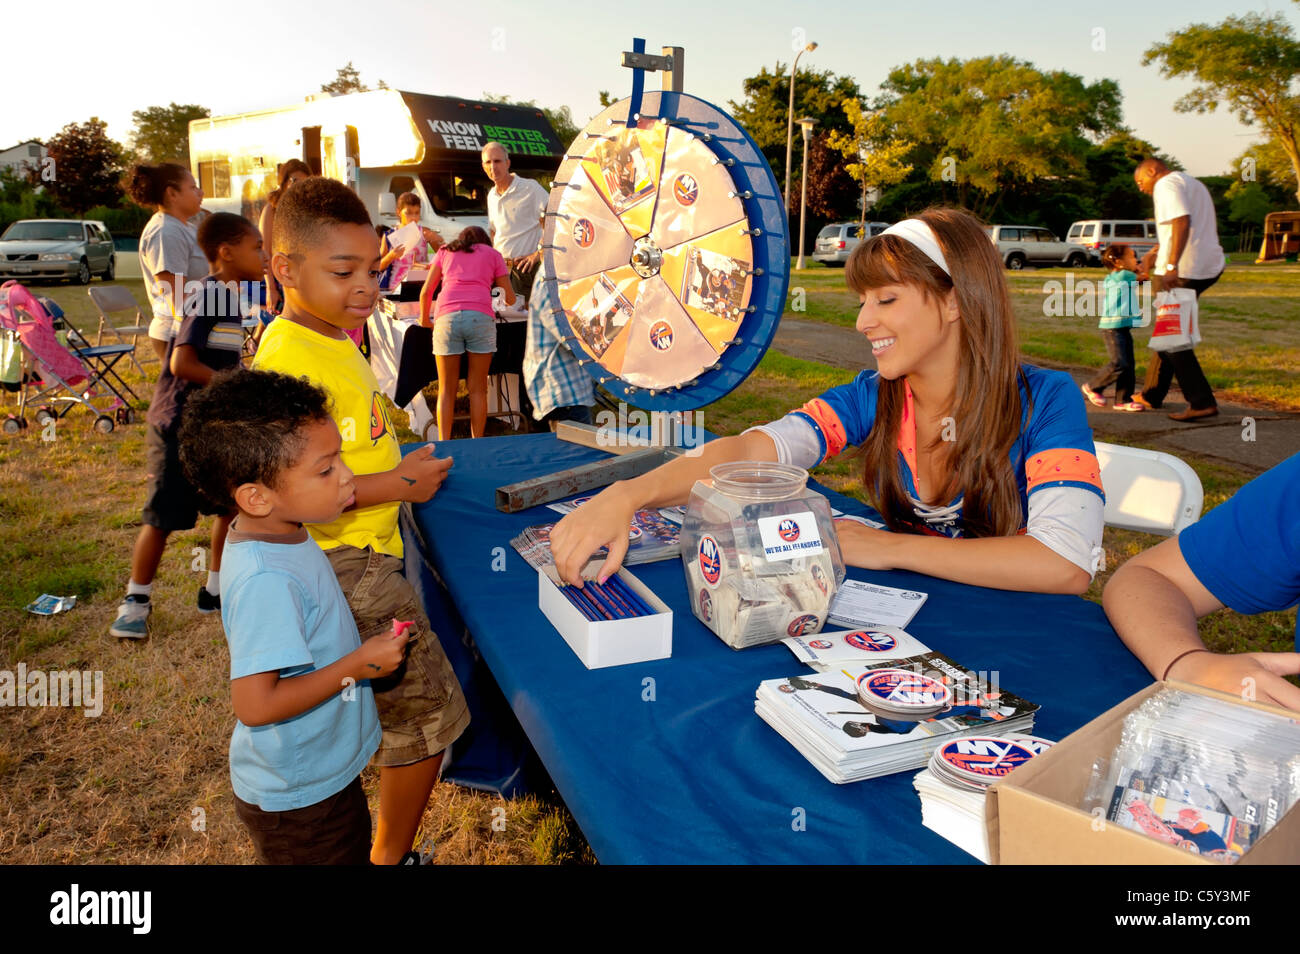 NY Islanders Ice Girl, Christie, giving New York Islanders pencils to two young boys at National Night Out, in Freeport, - Stock Image